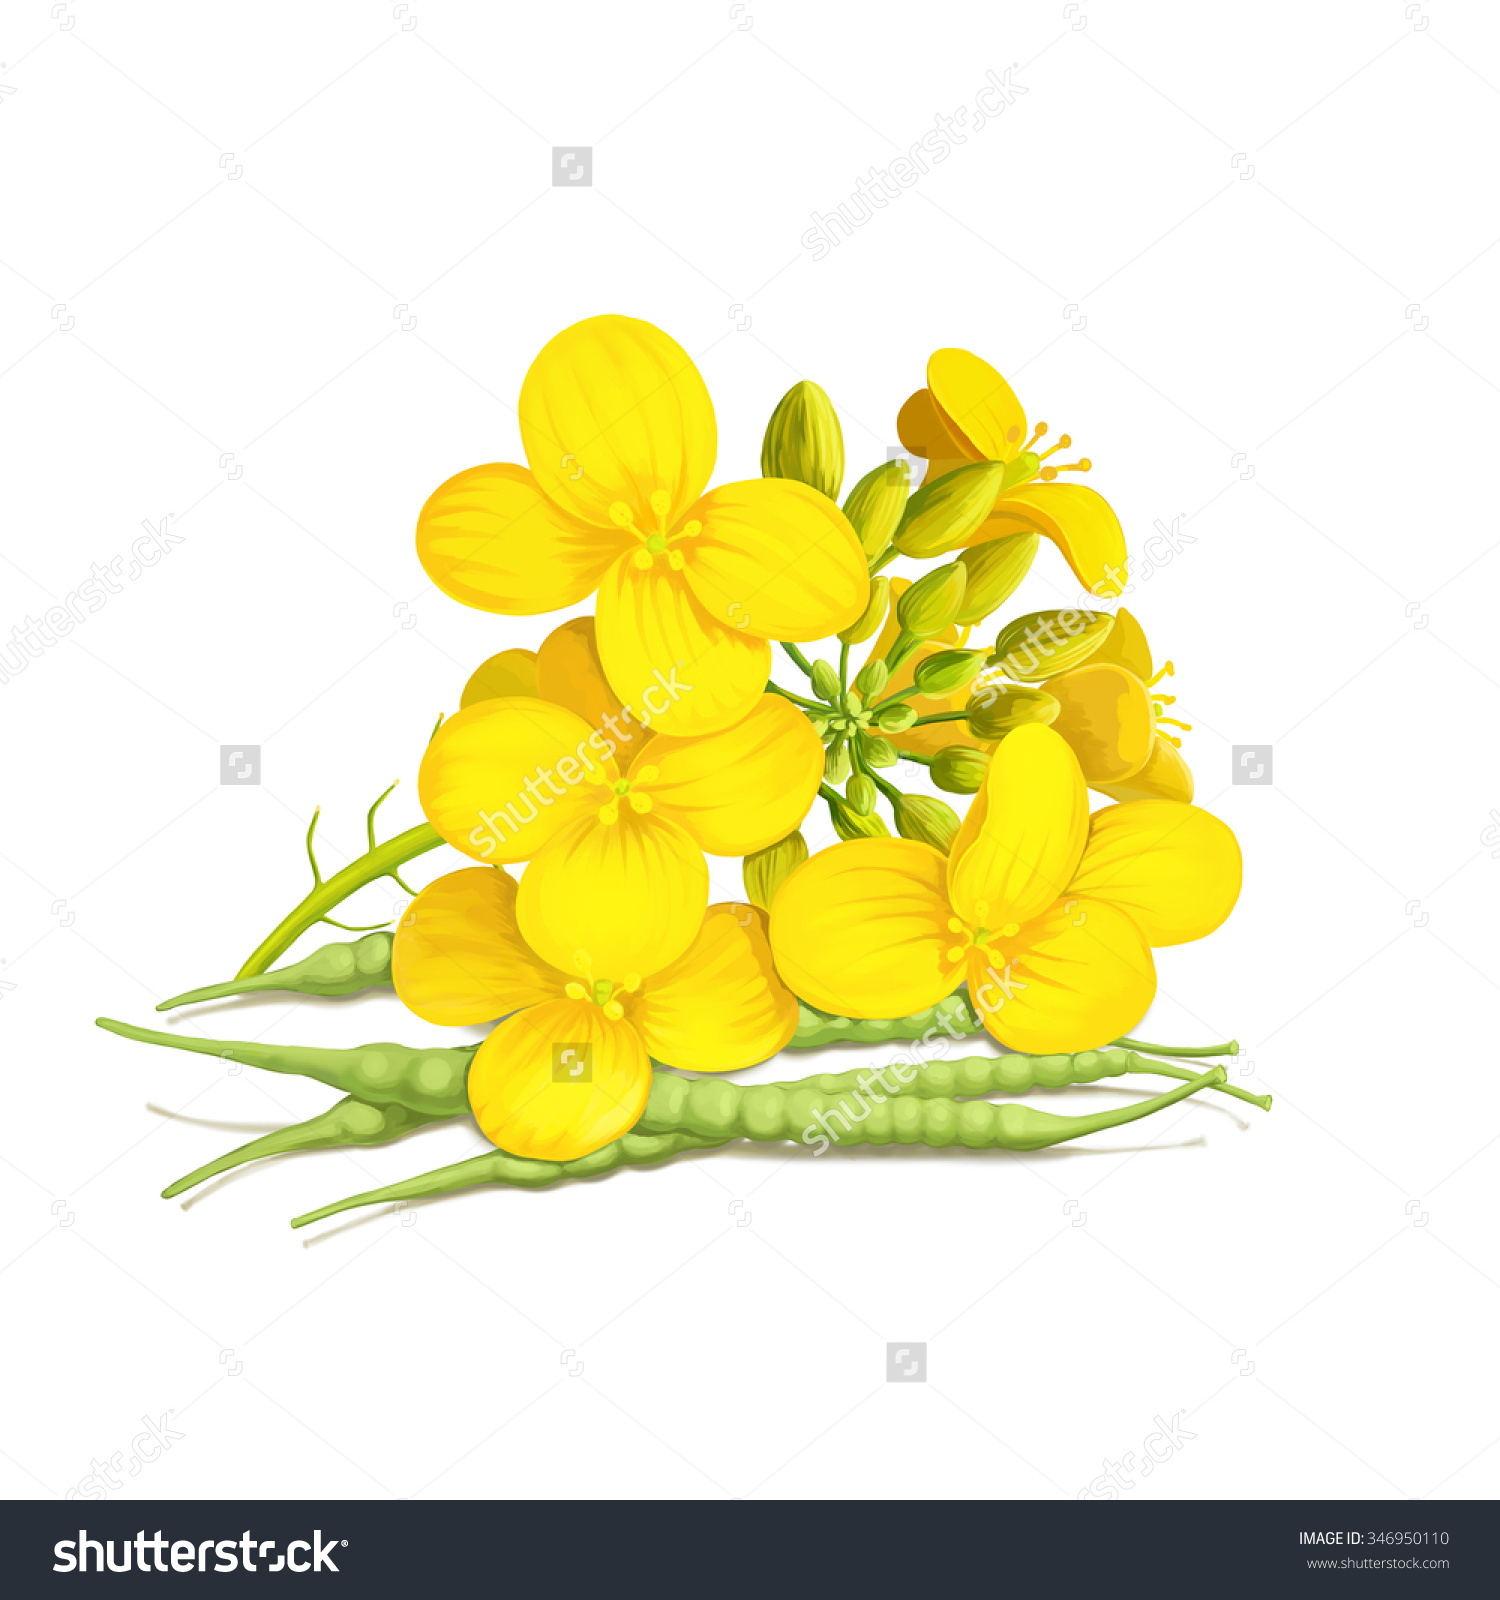 Rapeseed clipart #12, Download drawings